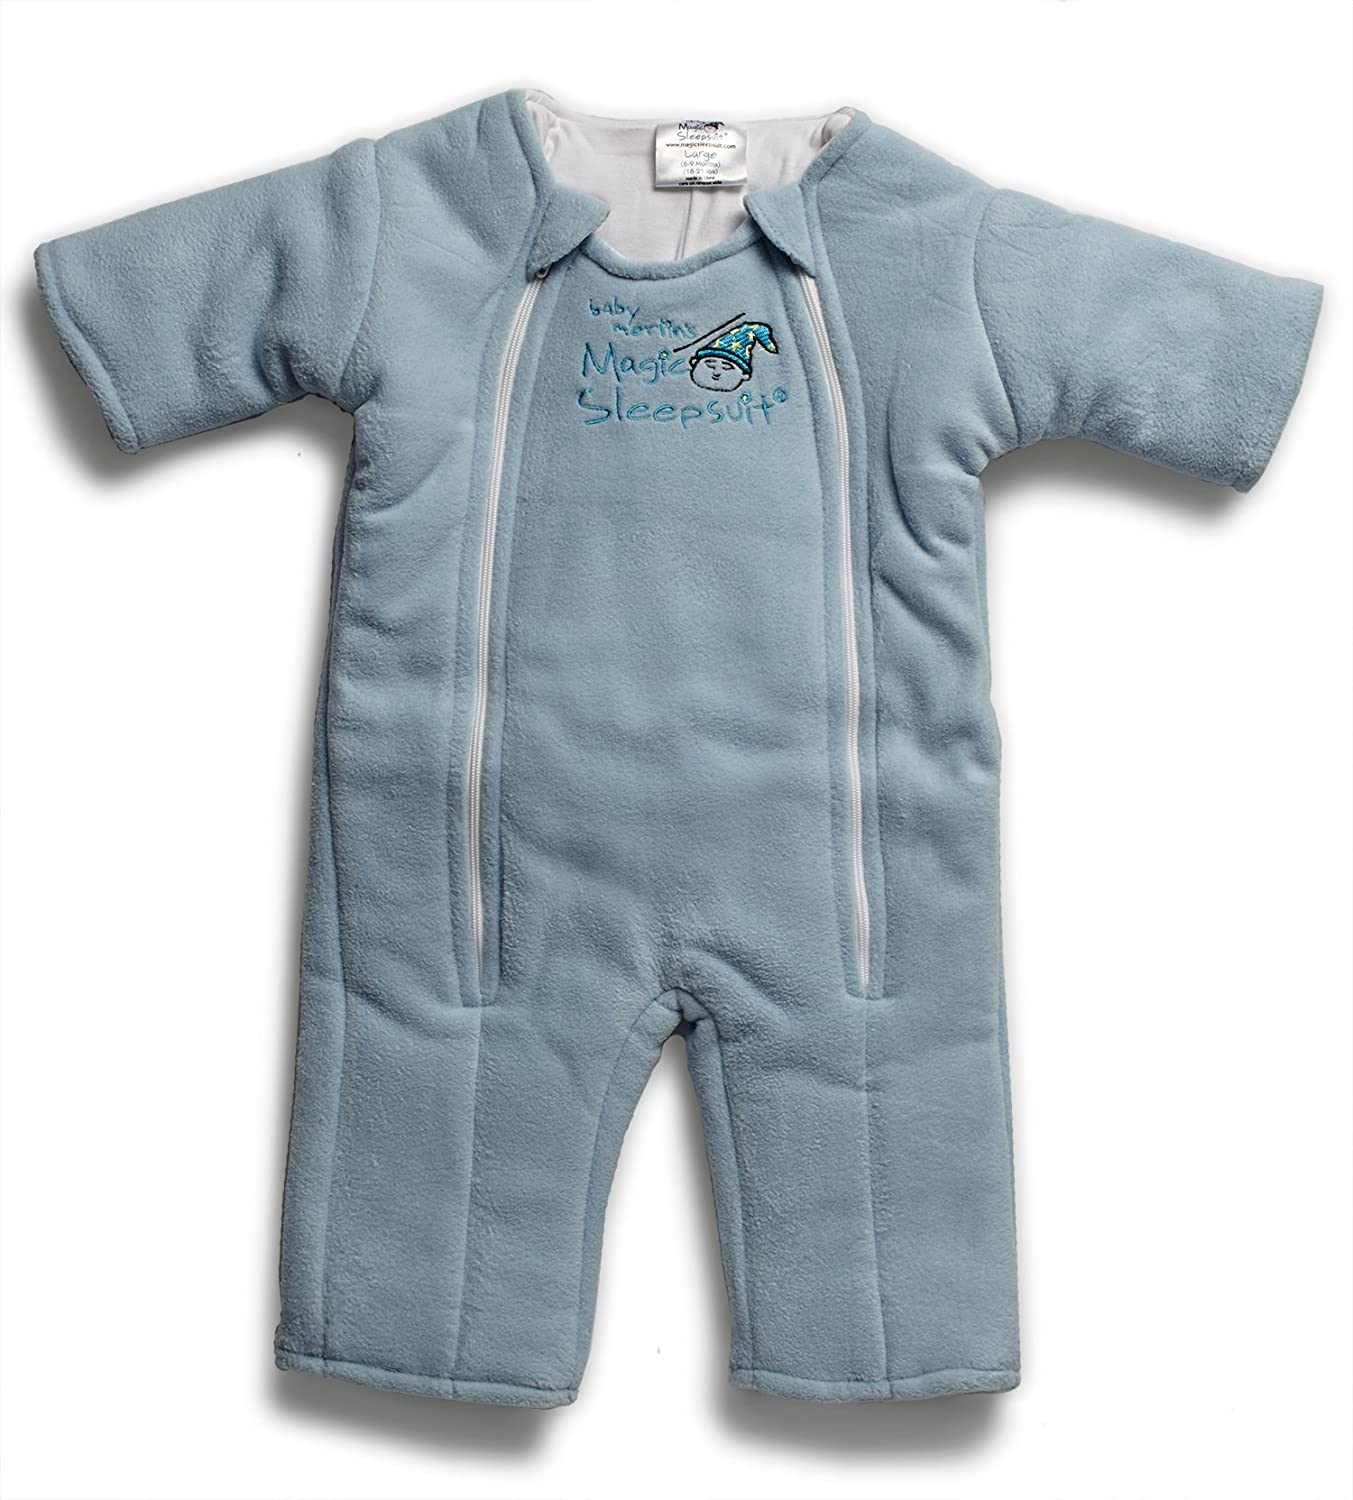 Baby Merlin's Magic Sleepsuit - Swaddle Transition Product - Microfleece - Blue - 6-9 months: Baby